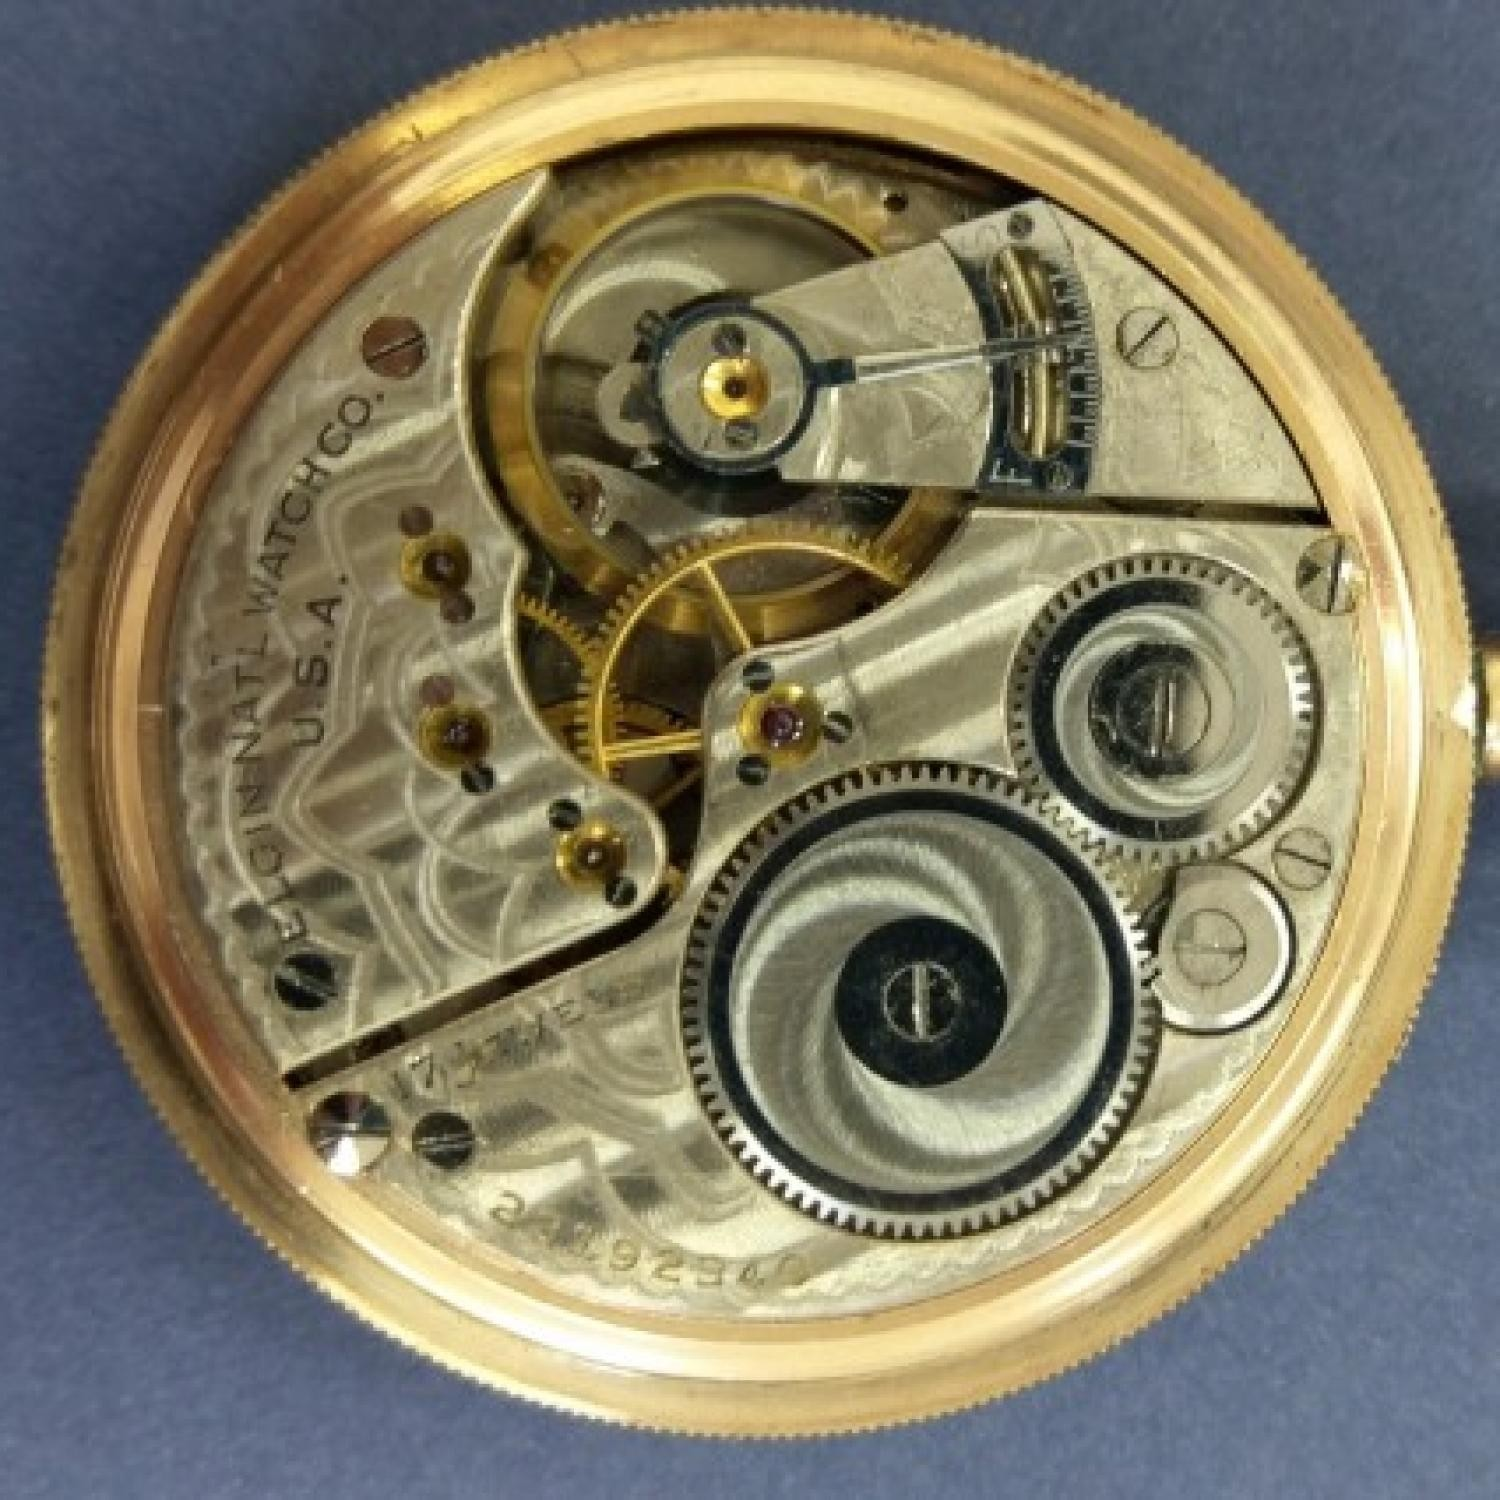 Image of Elgin 387 #23192340 Movement